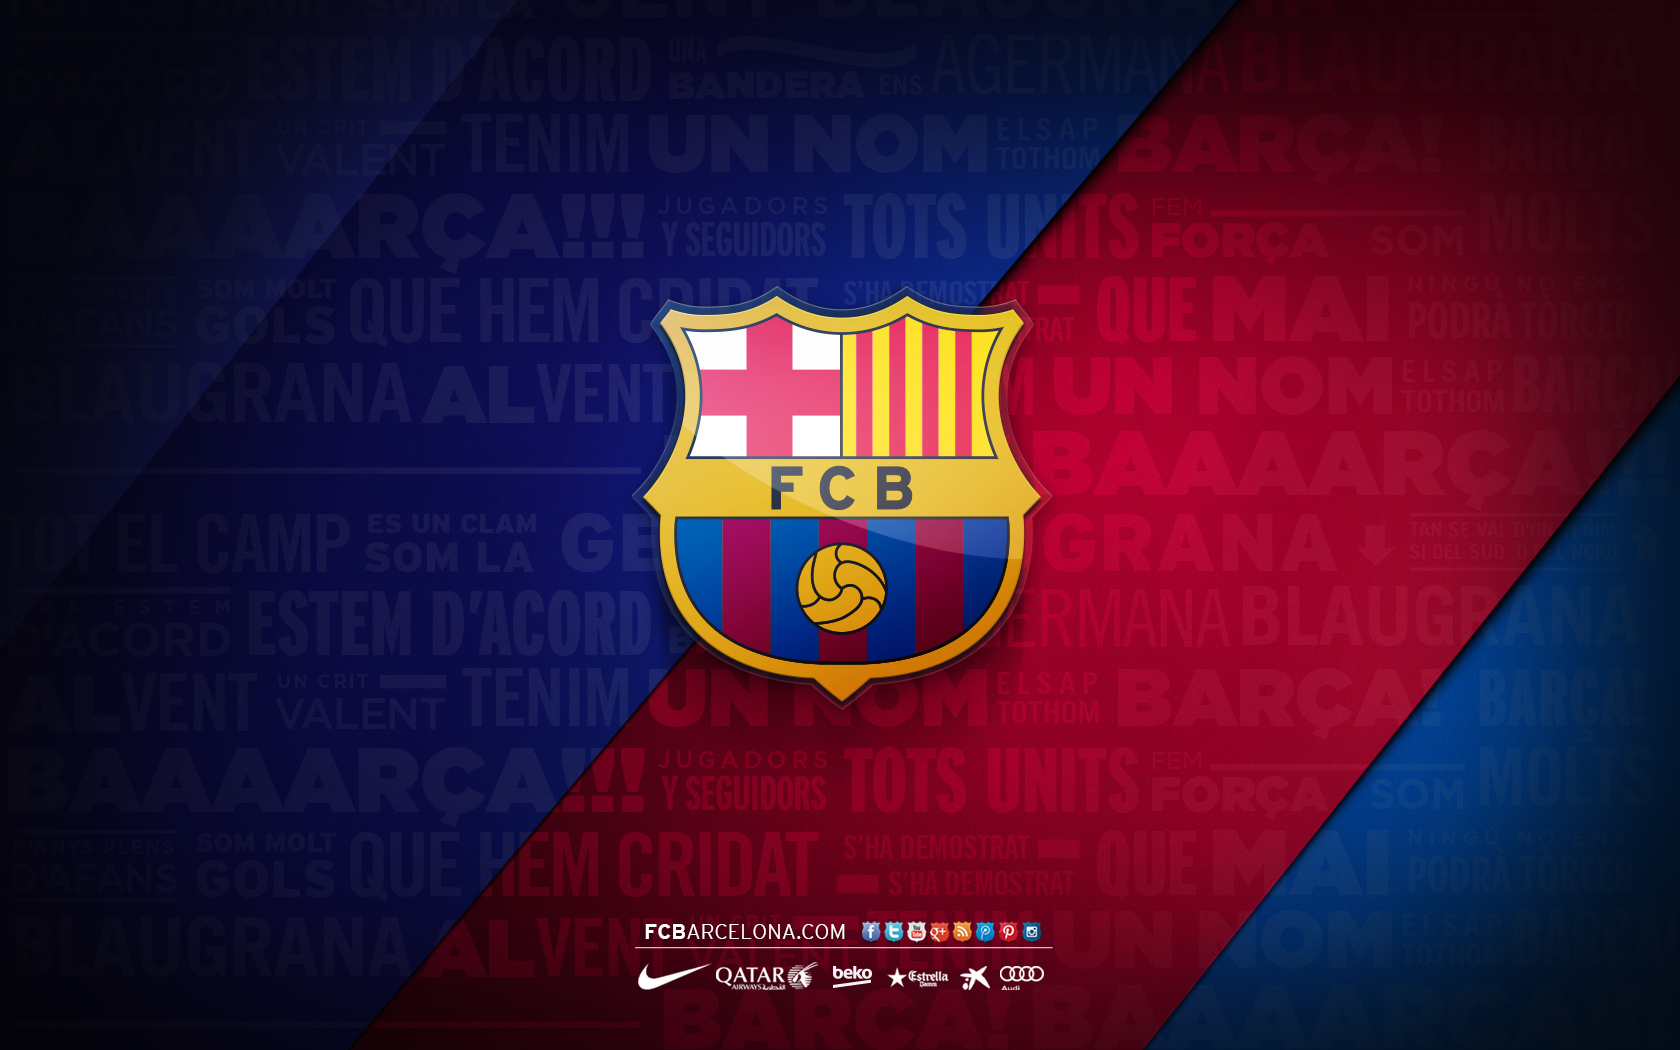 fcb crest 02 wallpaper fc barcelona